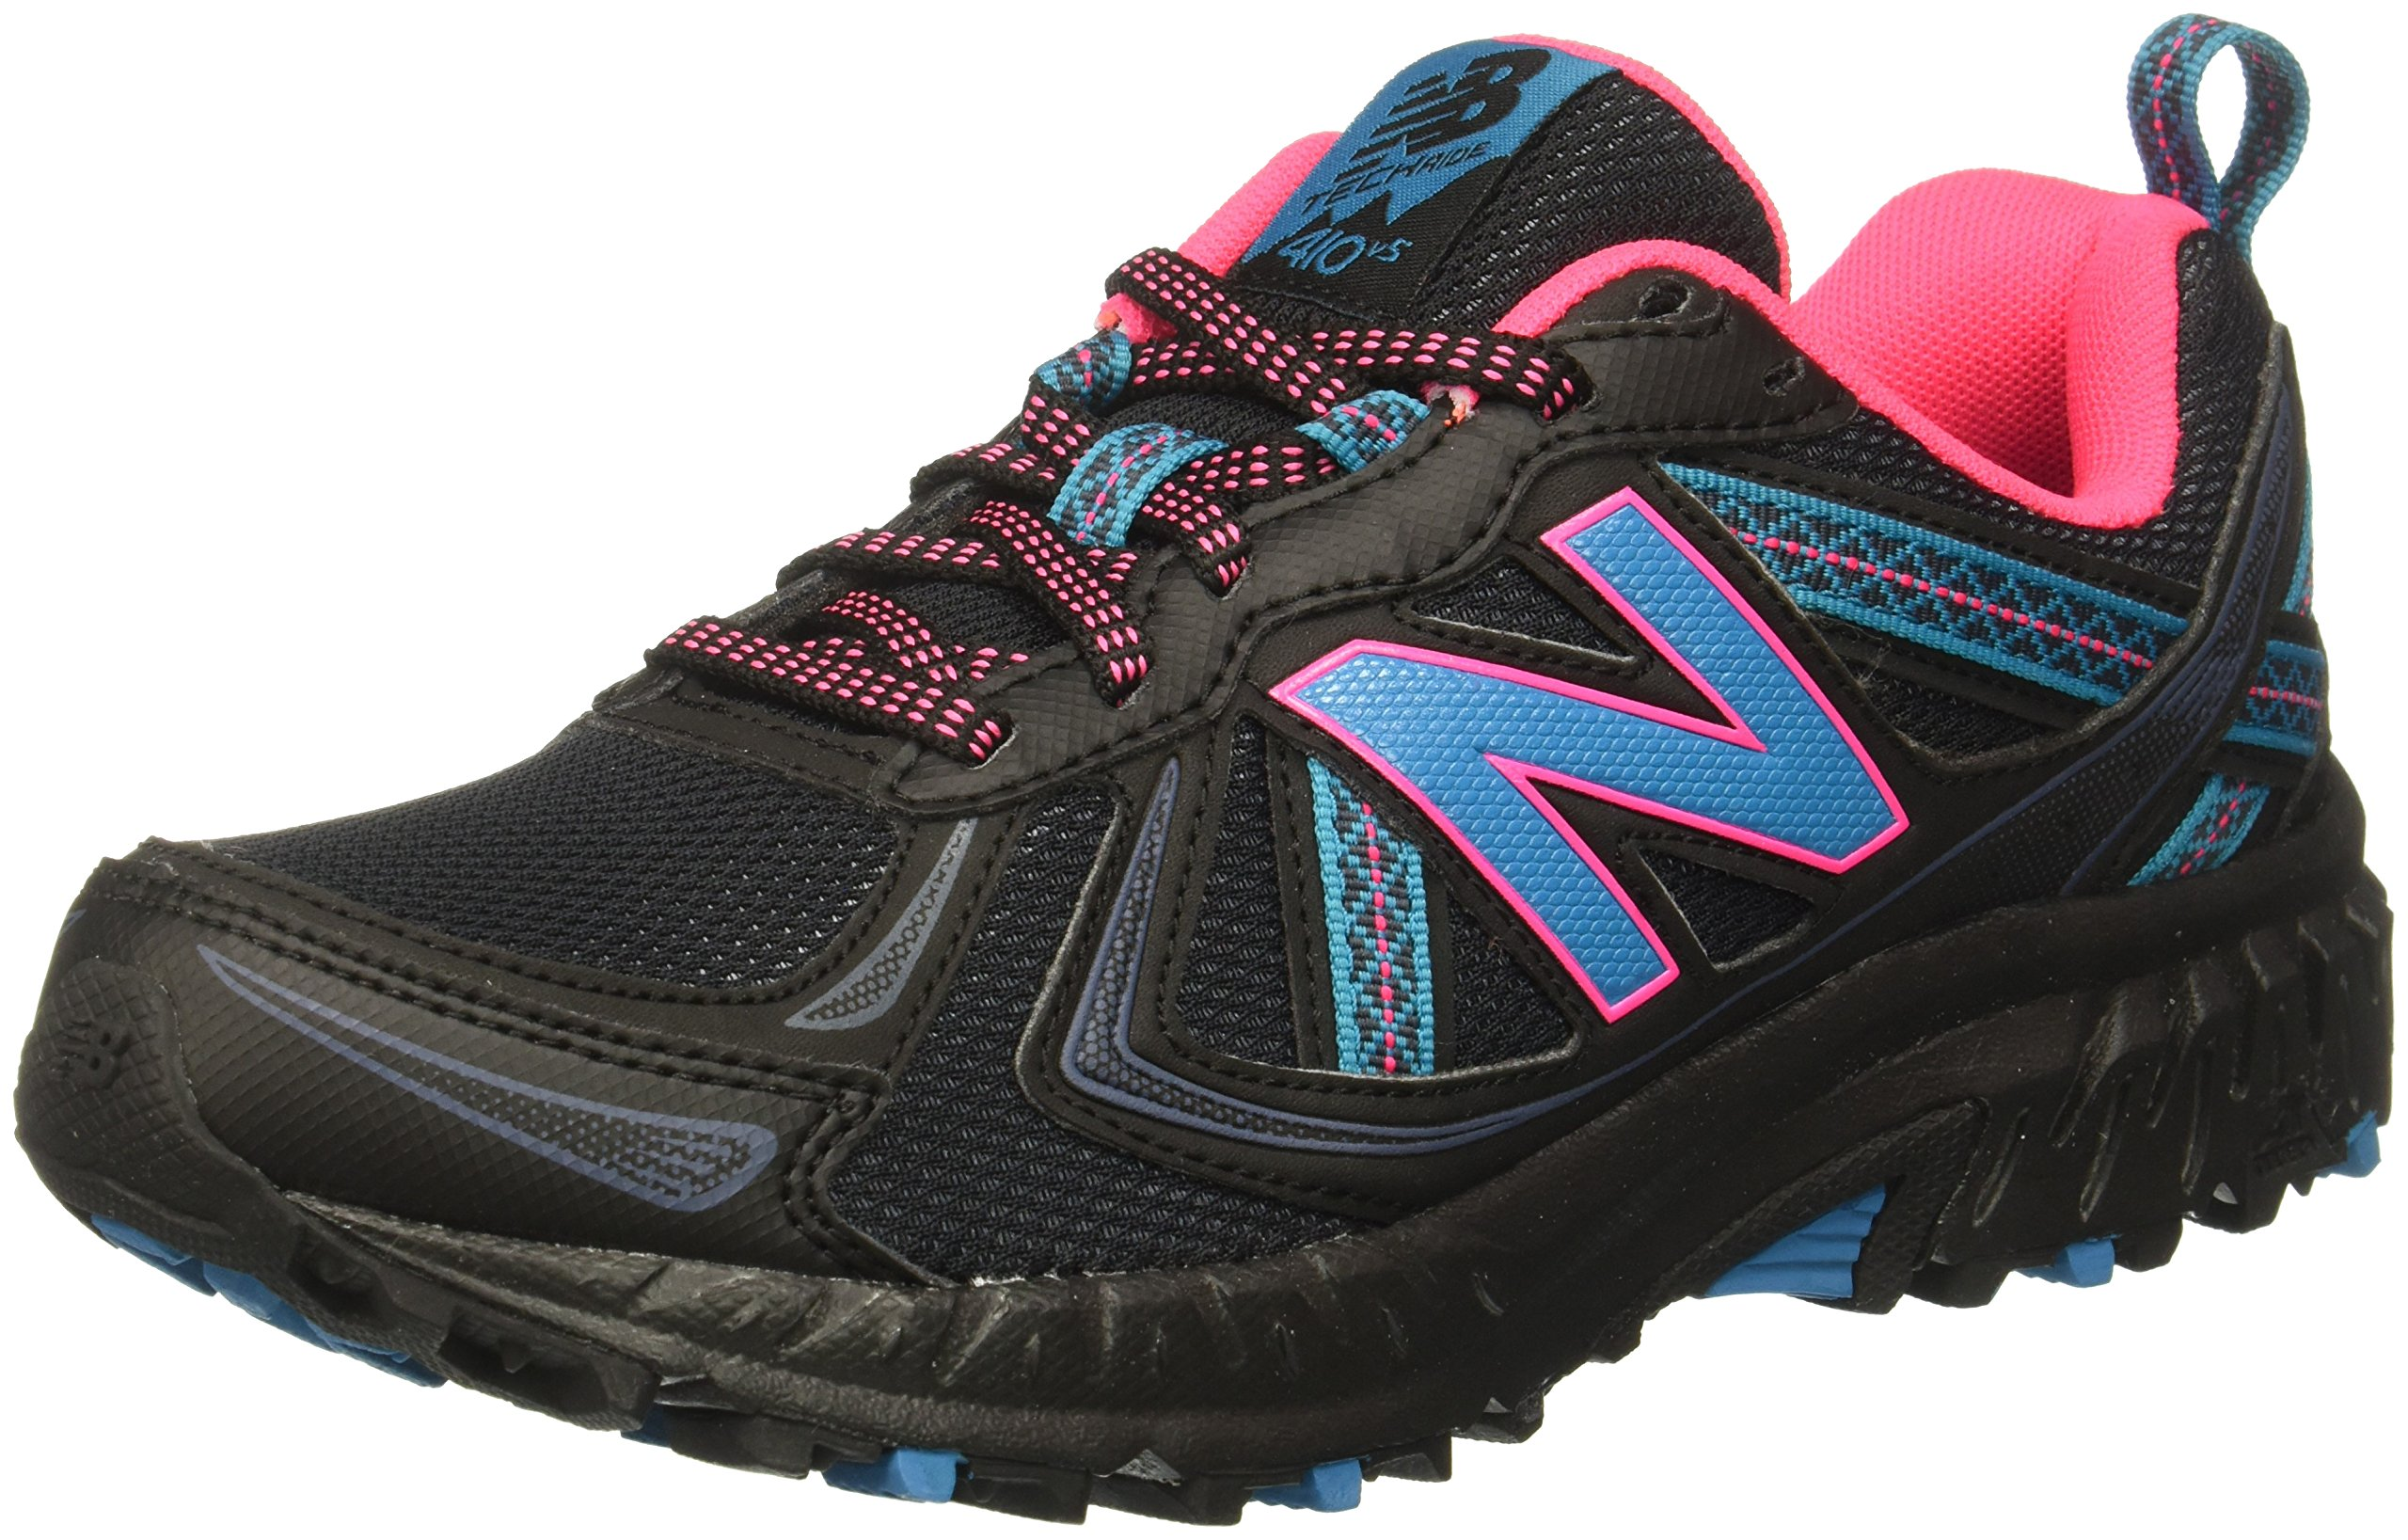 New Balance Women's WT410v5 Cushioning Trail Running Shoe, Black, 5.5 B US by New Balance